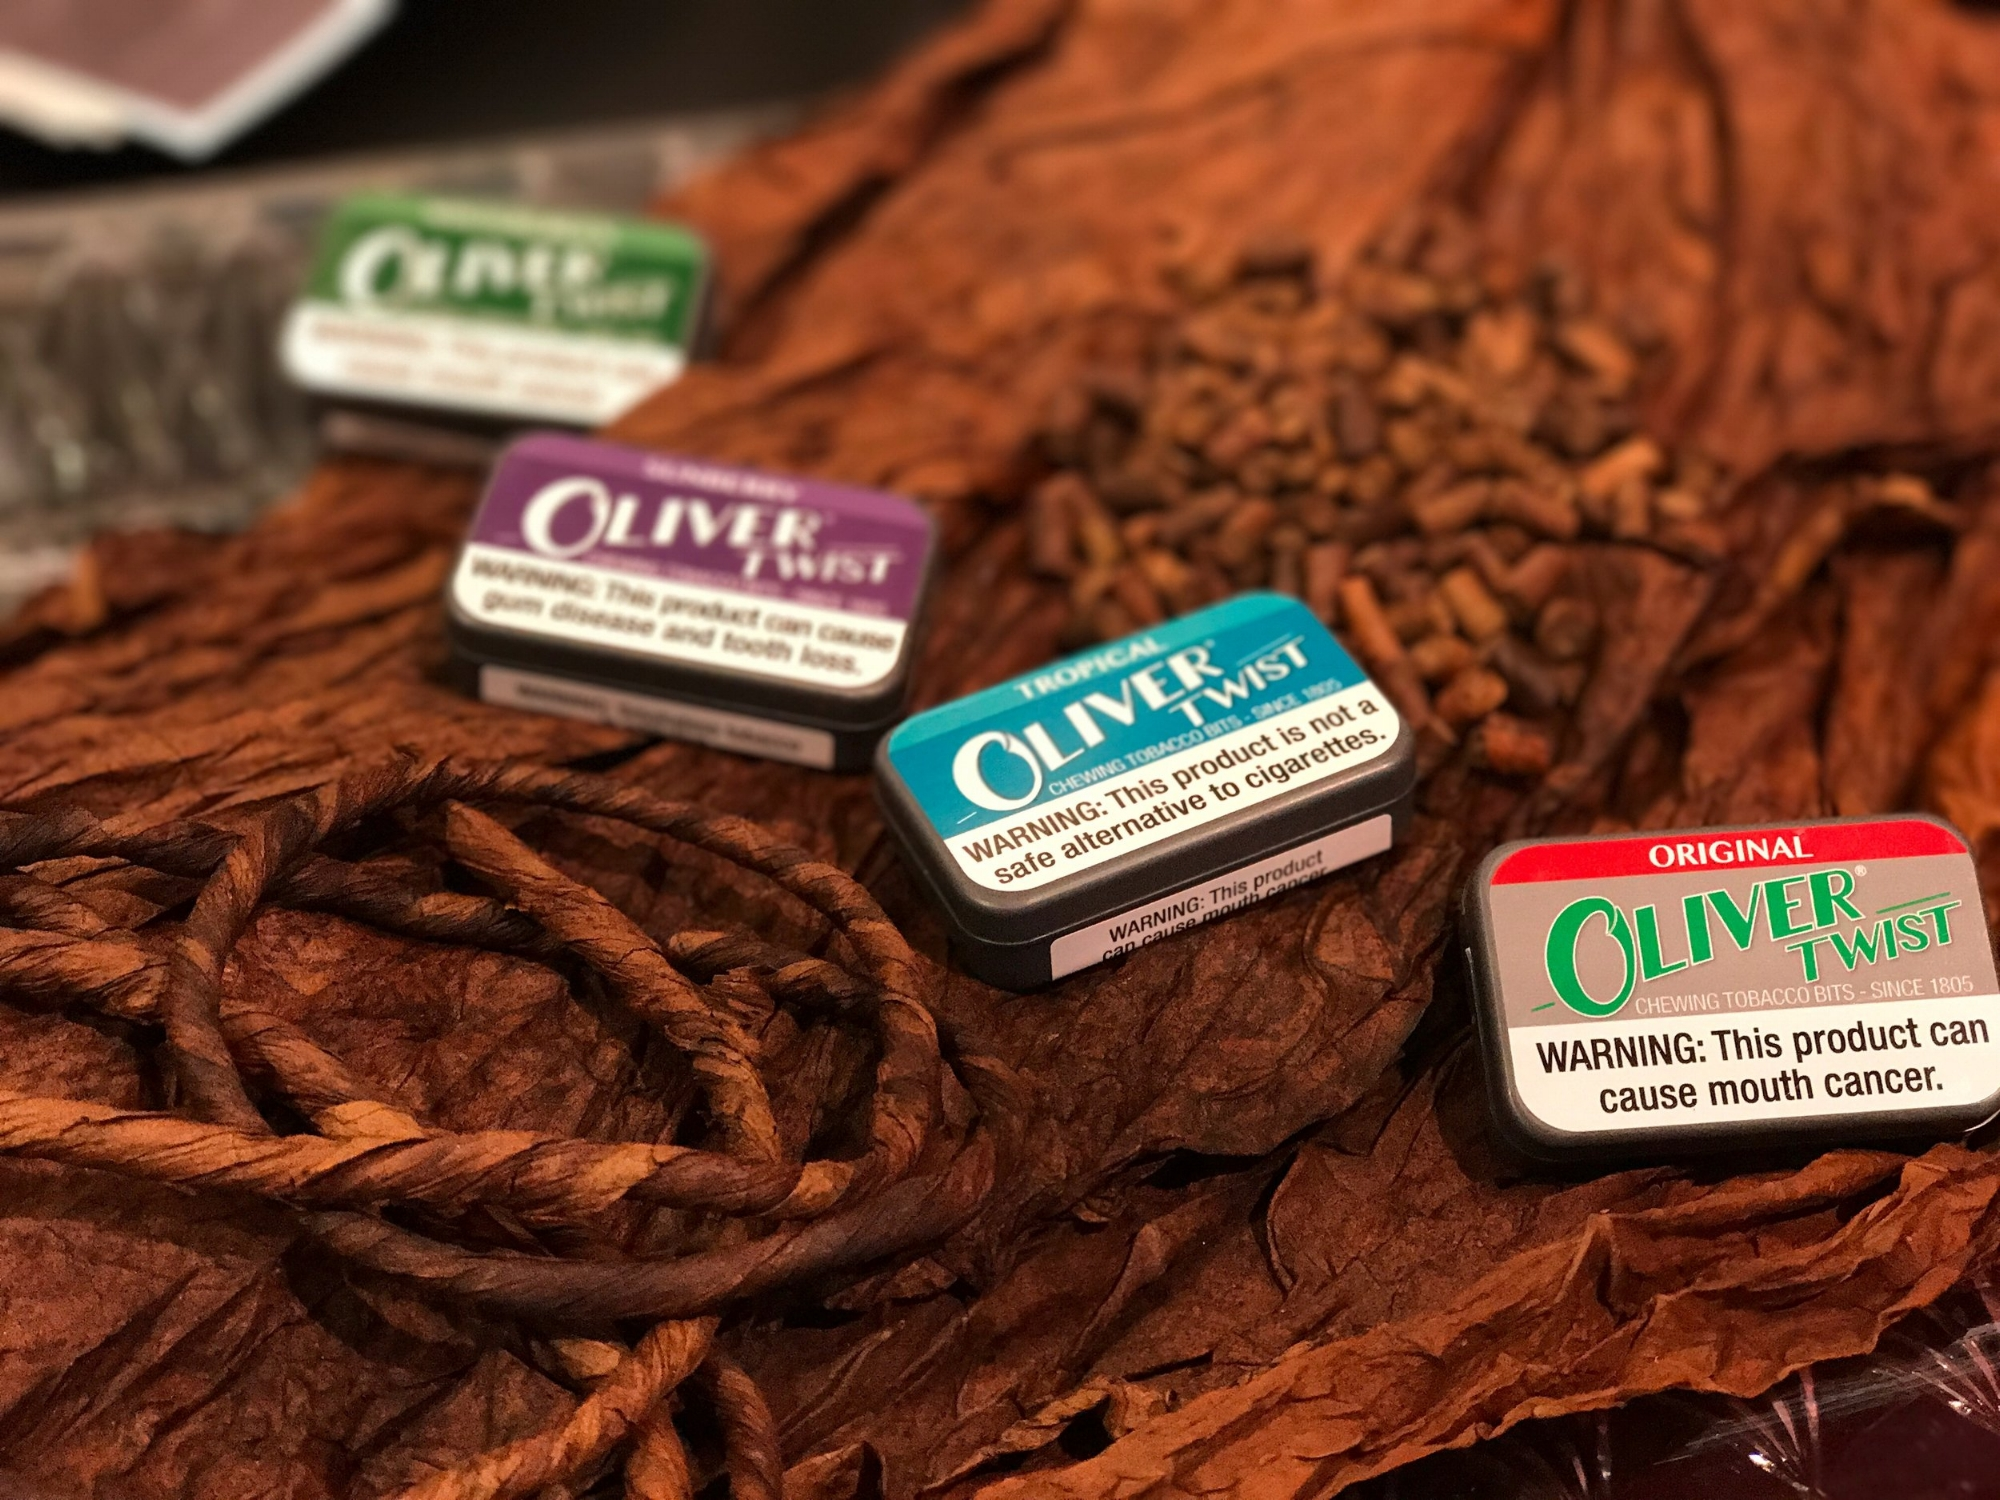 Oliver Twist Tobacco Bits - Oliver Twist are small, discreet tobacco bits (mini-rolls) in a variety of flavors. They have a large natural nicotine content and is a good product to use where smoking is not permitted.